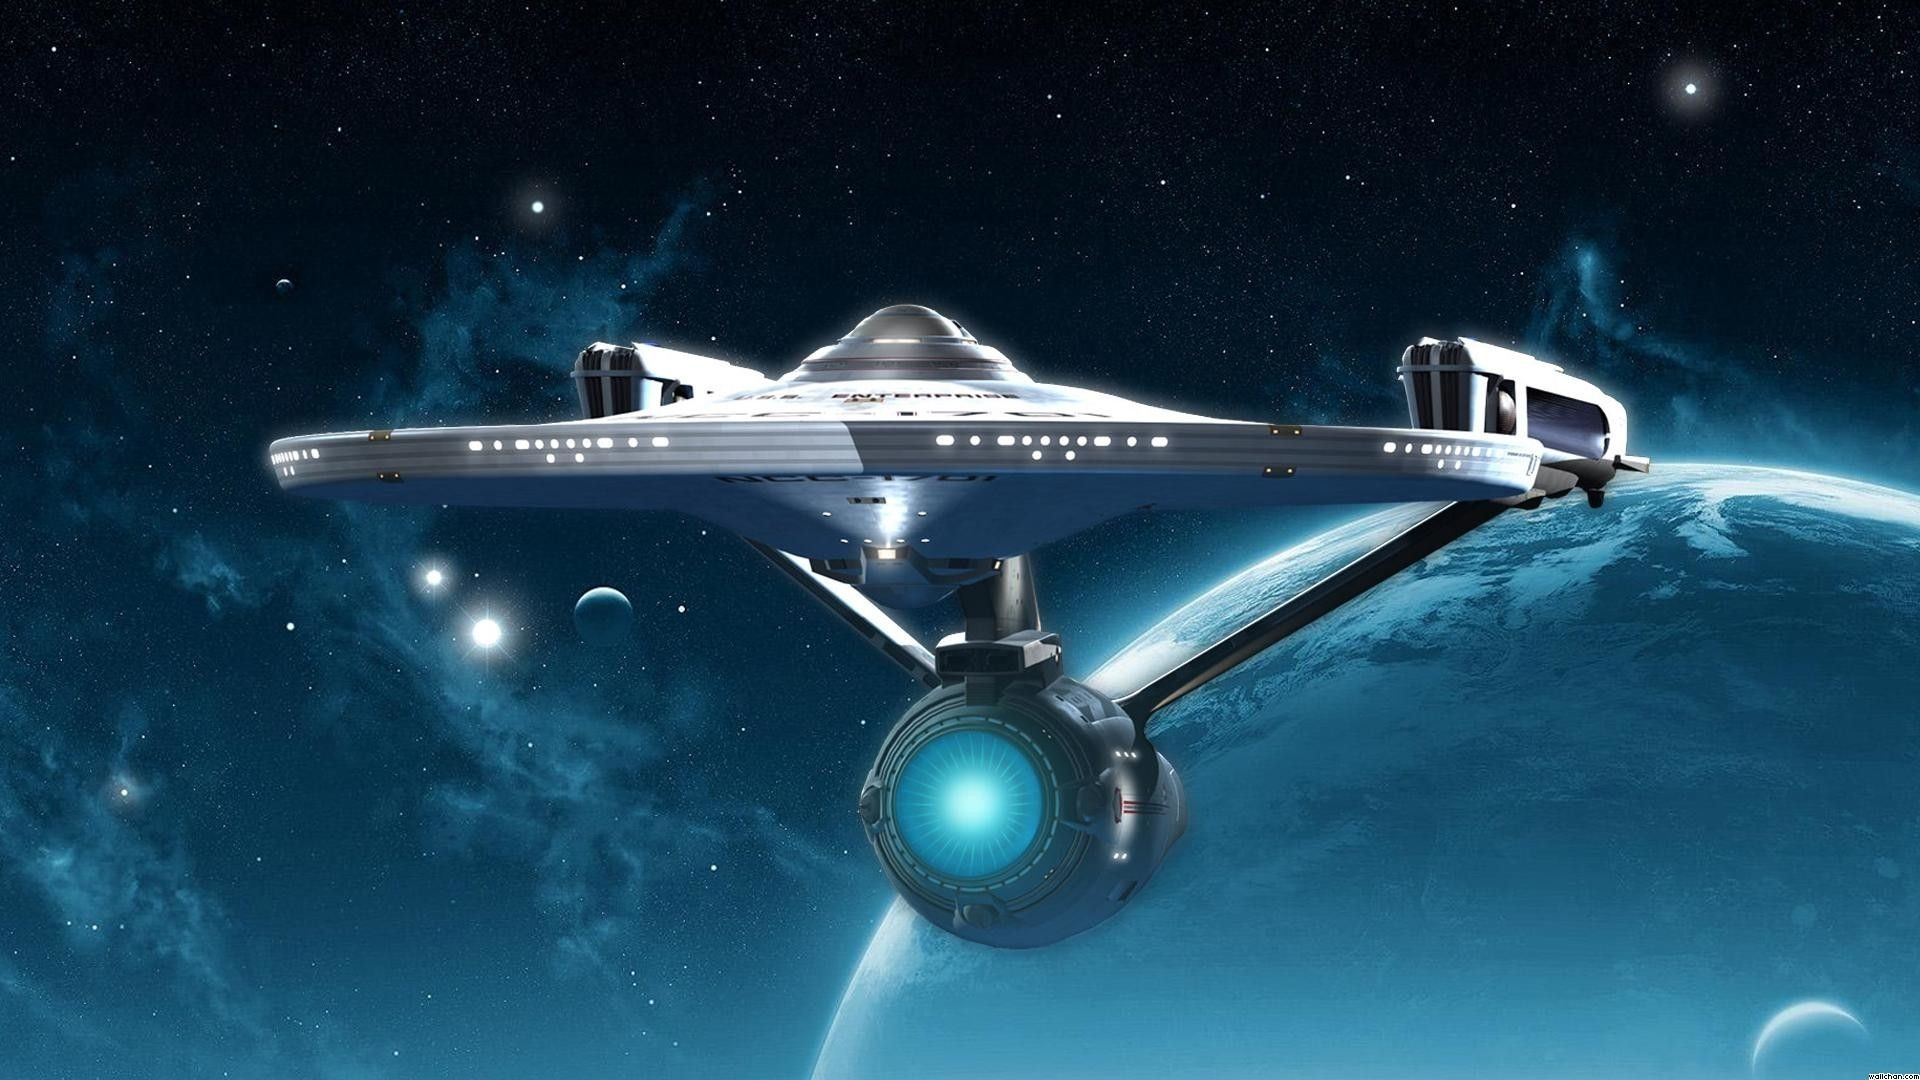 1920x1080 star trek enterprise wallpaper - viewing gallery | rpg